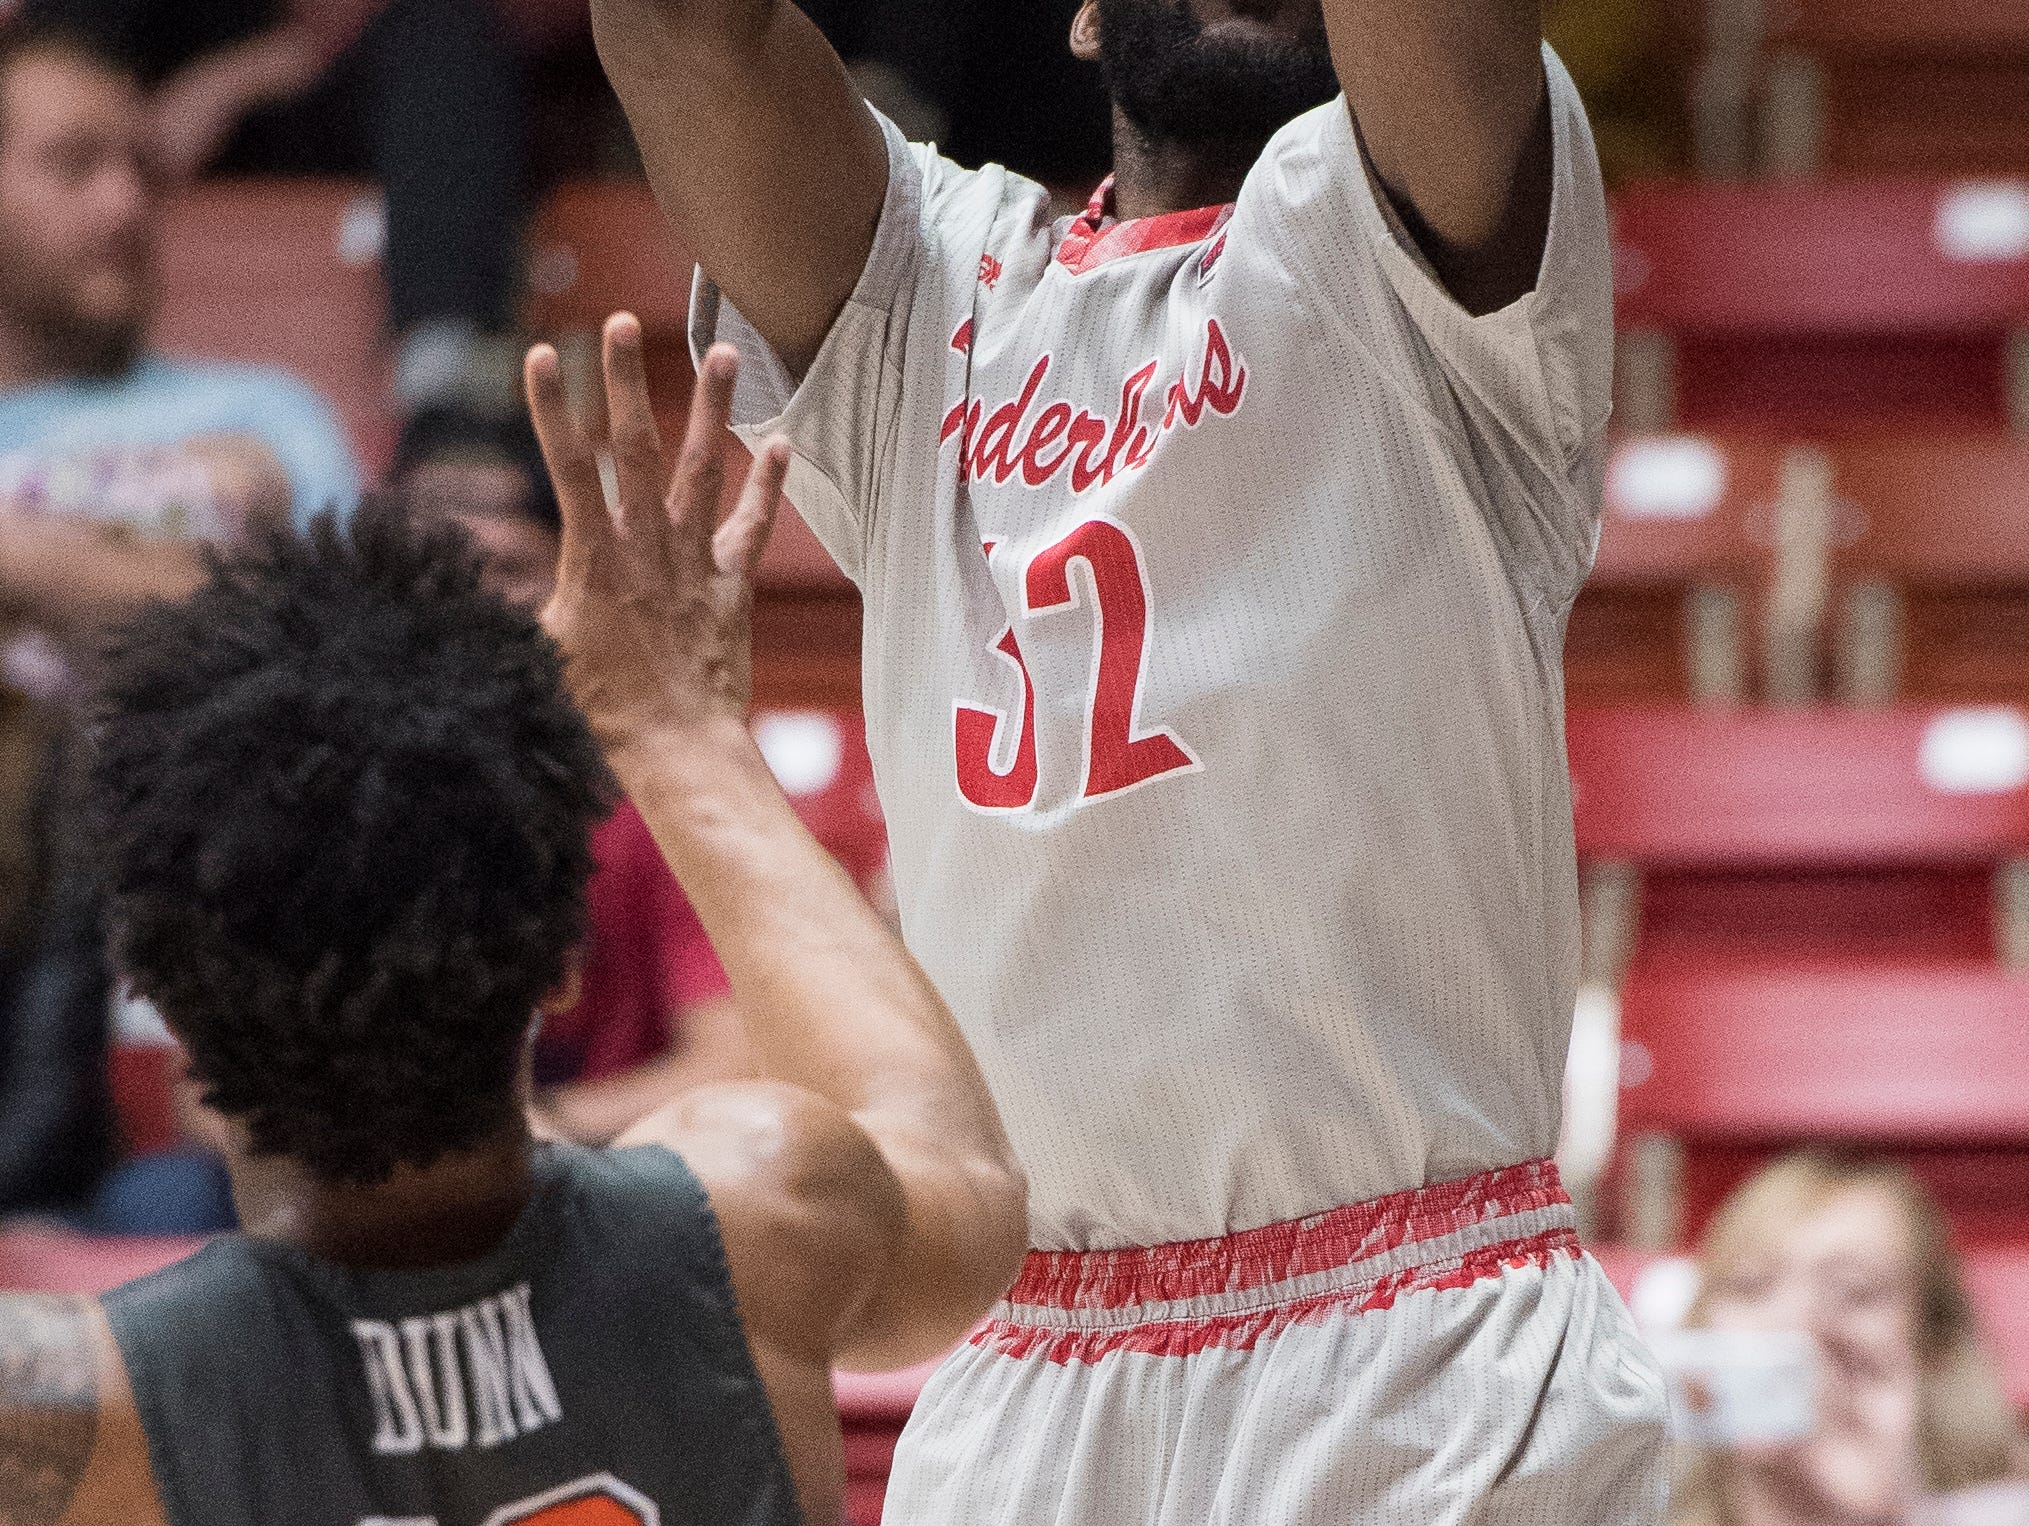 Southern Utah University junior Andre Adams (32) sinks a three-point shot against Pepperdine University in the America First Event Center Saturday, December 15, 2018. SUU won in overtime, 78-69.